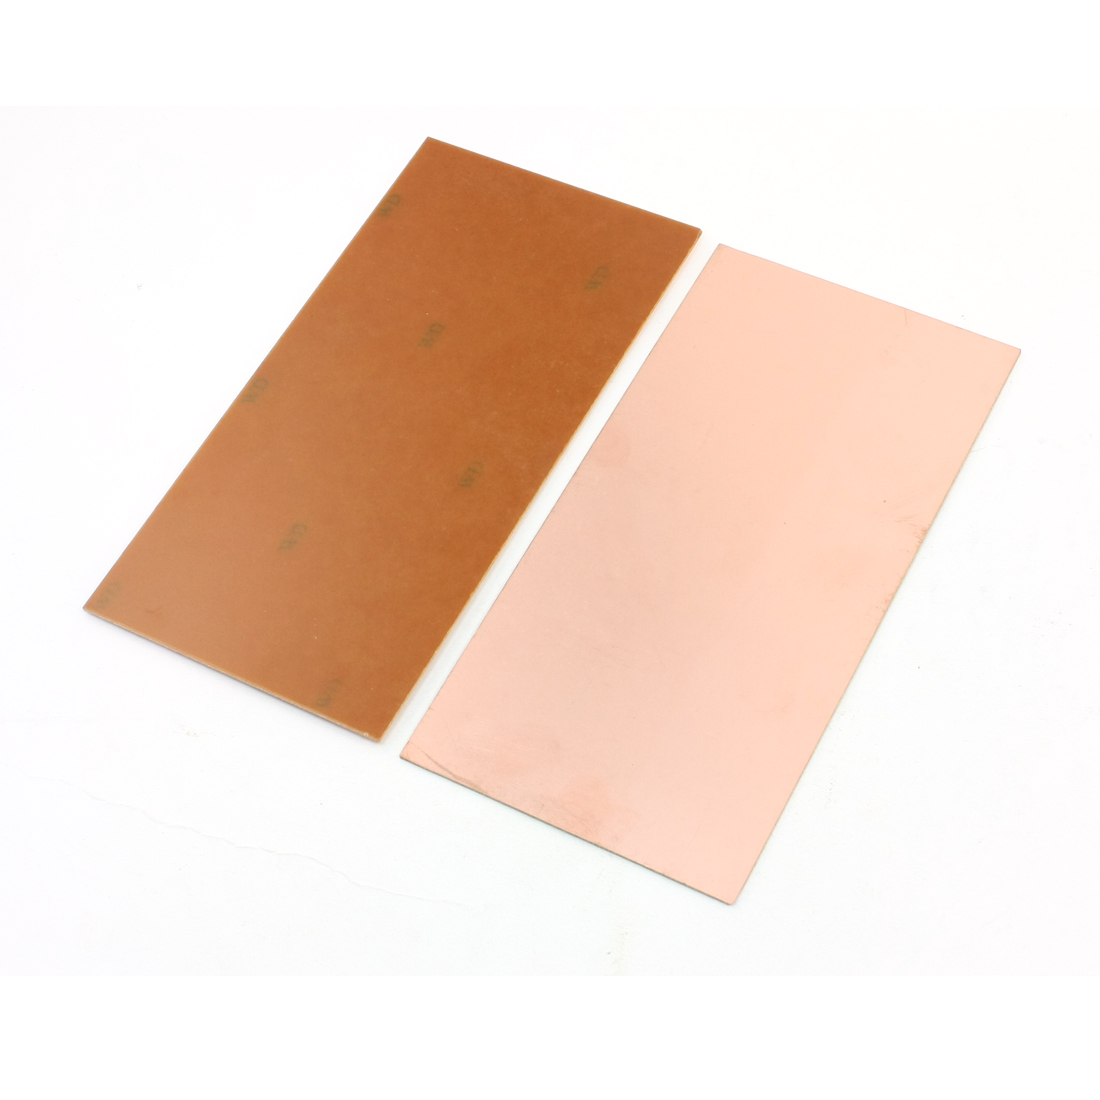 2 Pcs DIY Single Side Copper Plated Prototype Paper PCB Board 20cm x 10cm